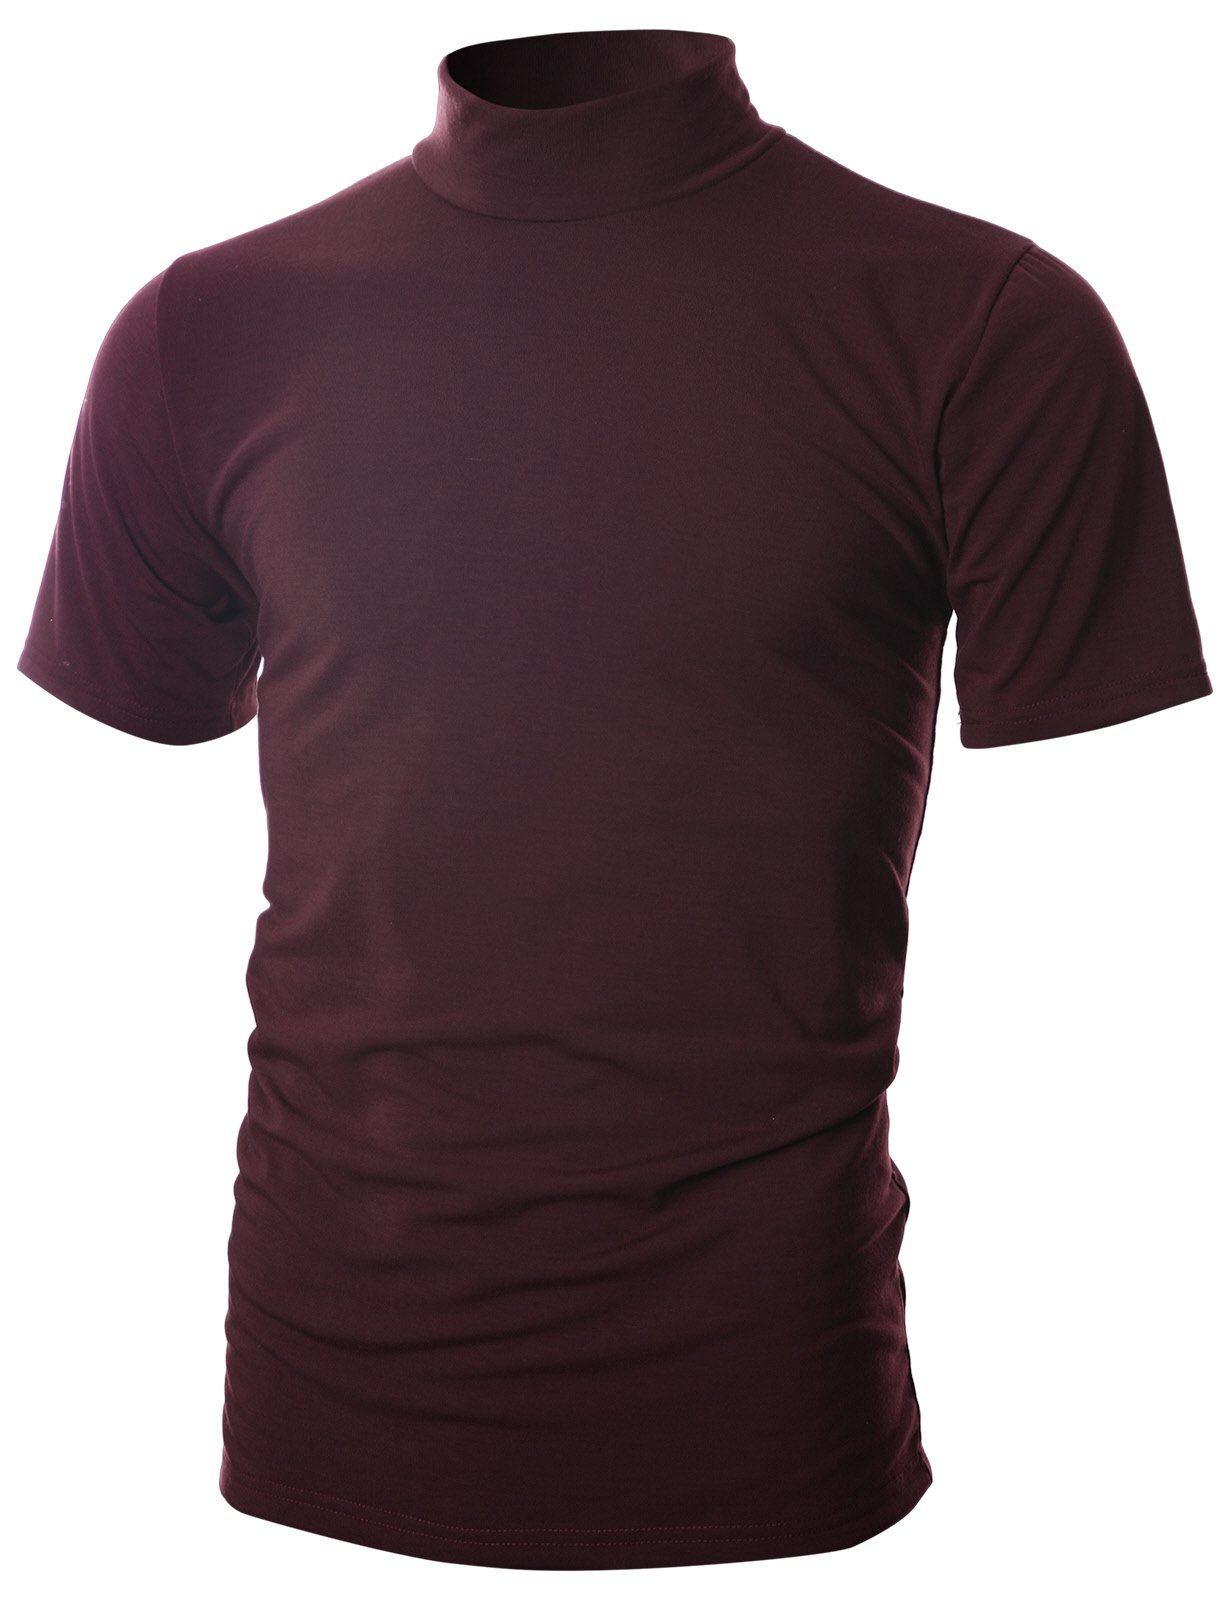 Ohoo Mens Slim Fit Soft Cotton Short Sleeve Pullover Lightweight Turtleneck Warm Inside /DCT101-BURGUNDY-2XL by Ohoo (Image #1)